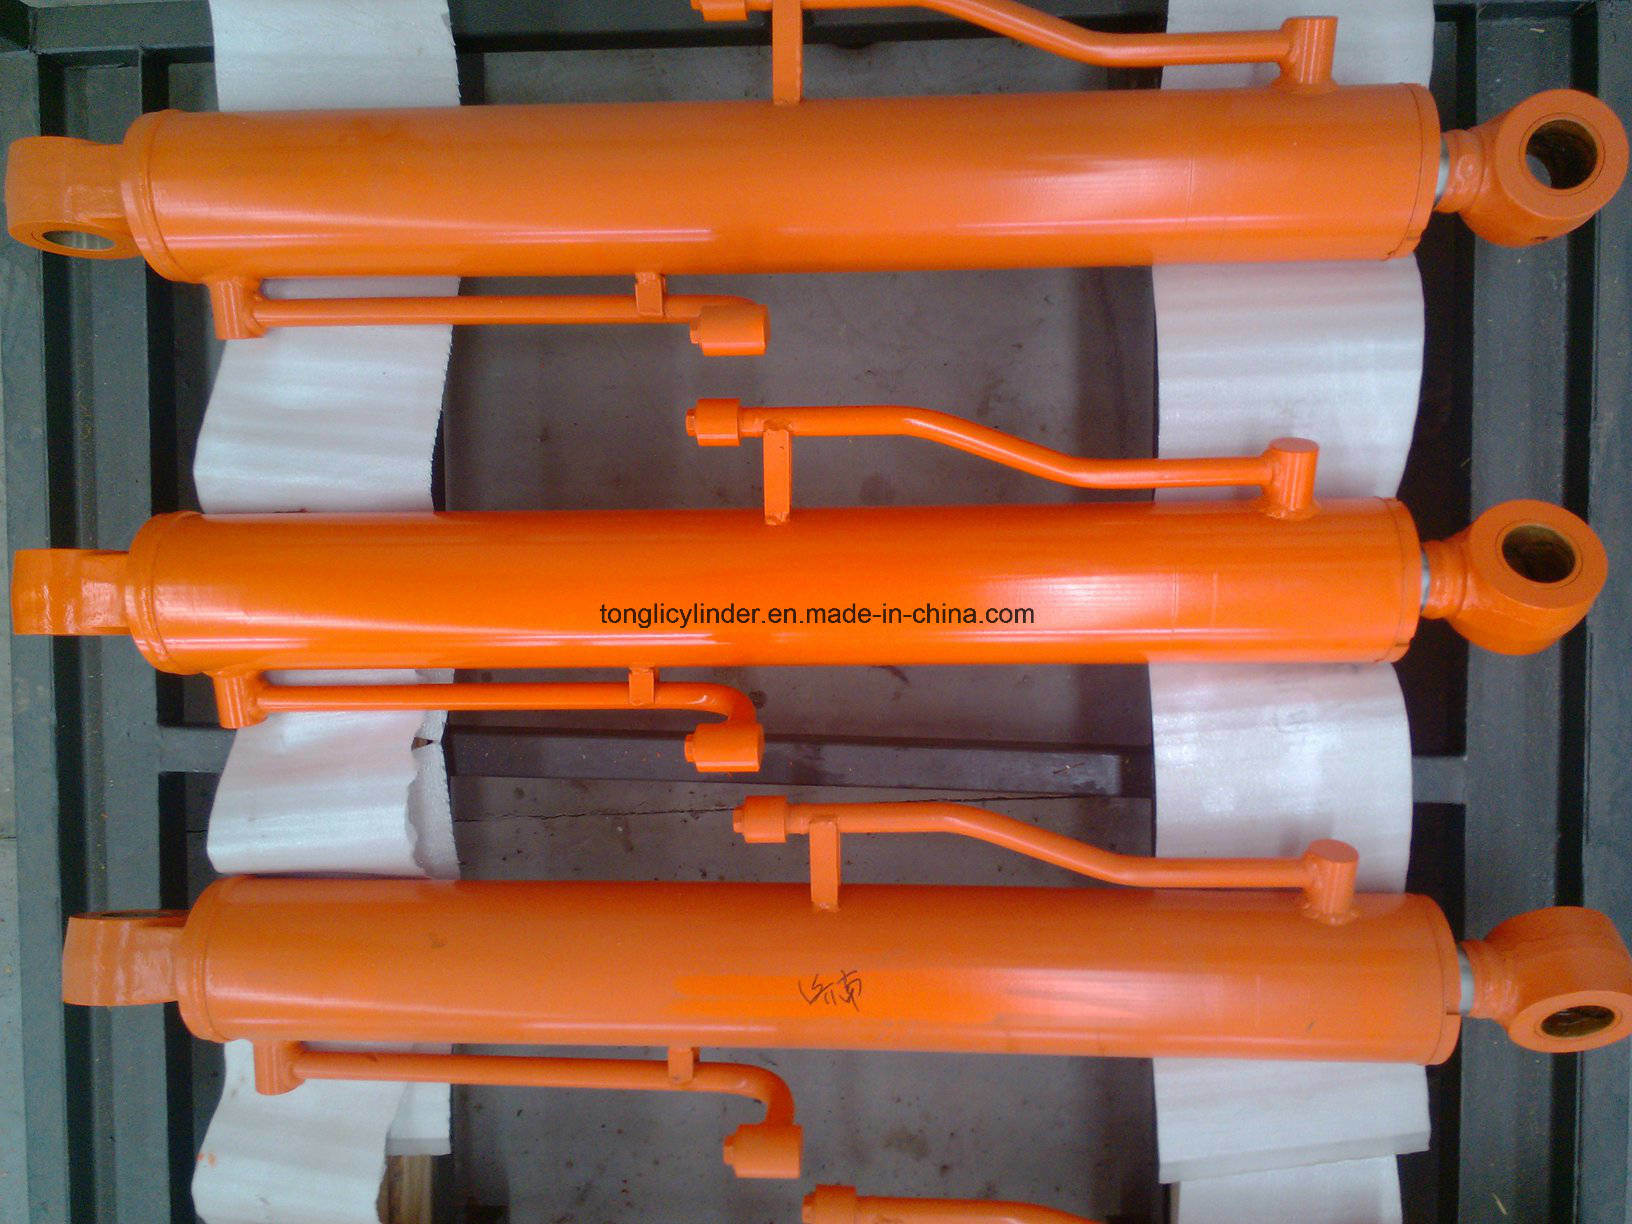 Dh60 Doosan Excavator Bucket Cylinder / Hydraulic Cylinders for Sale